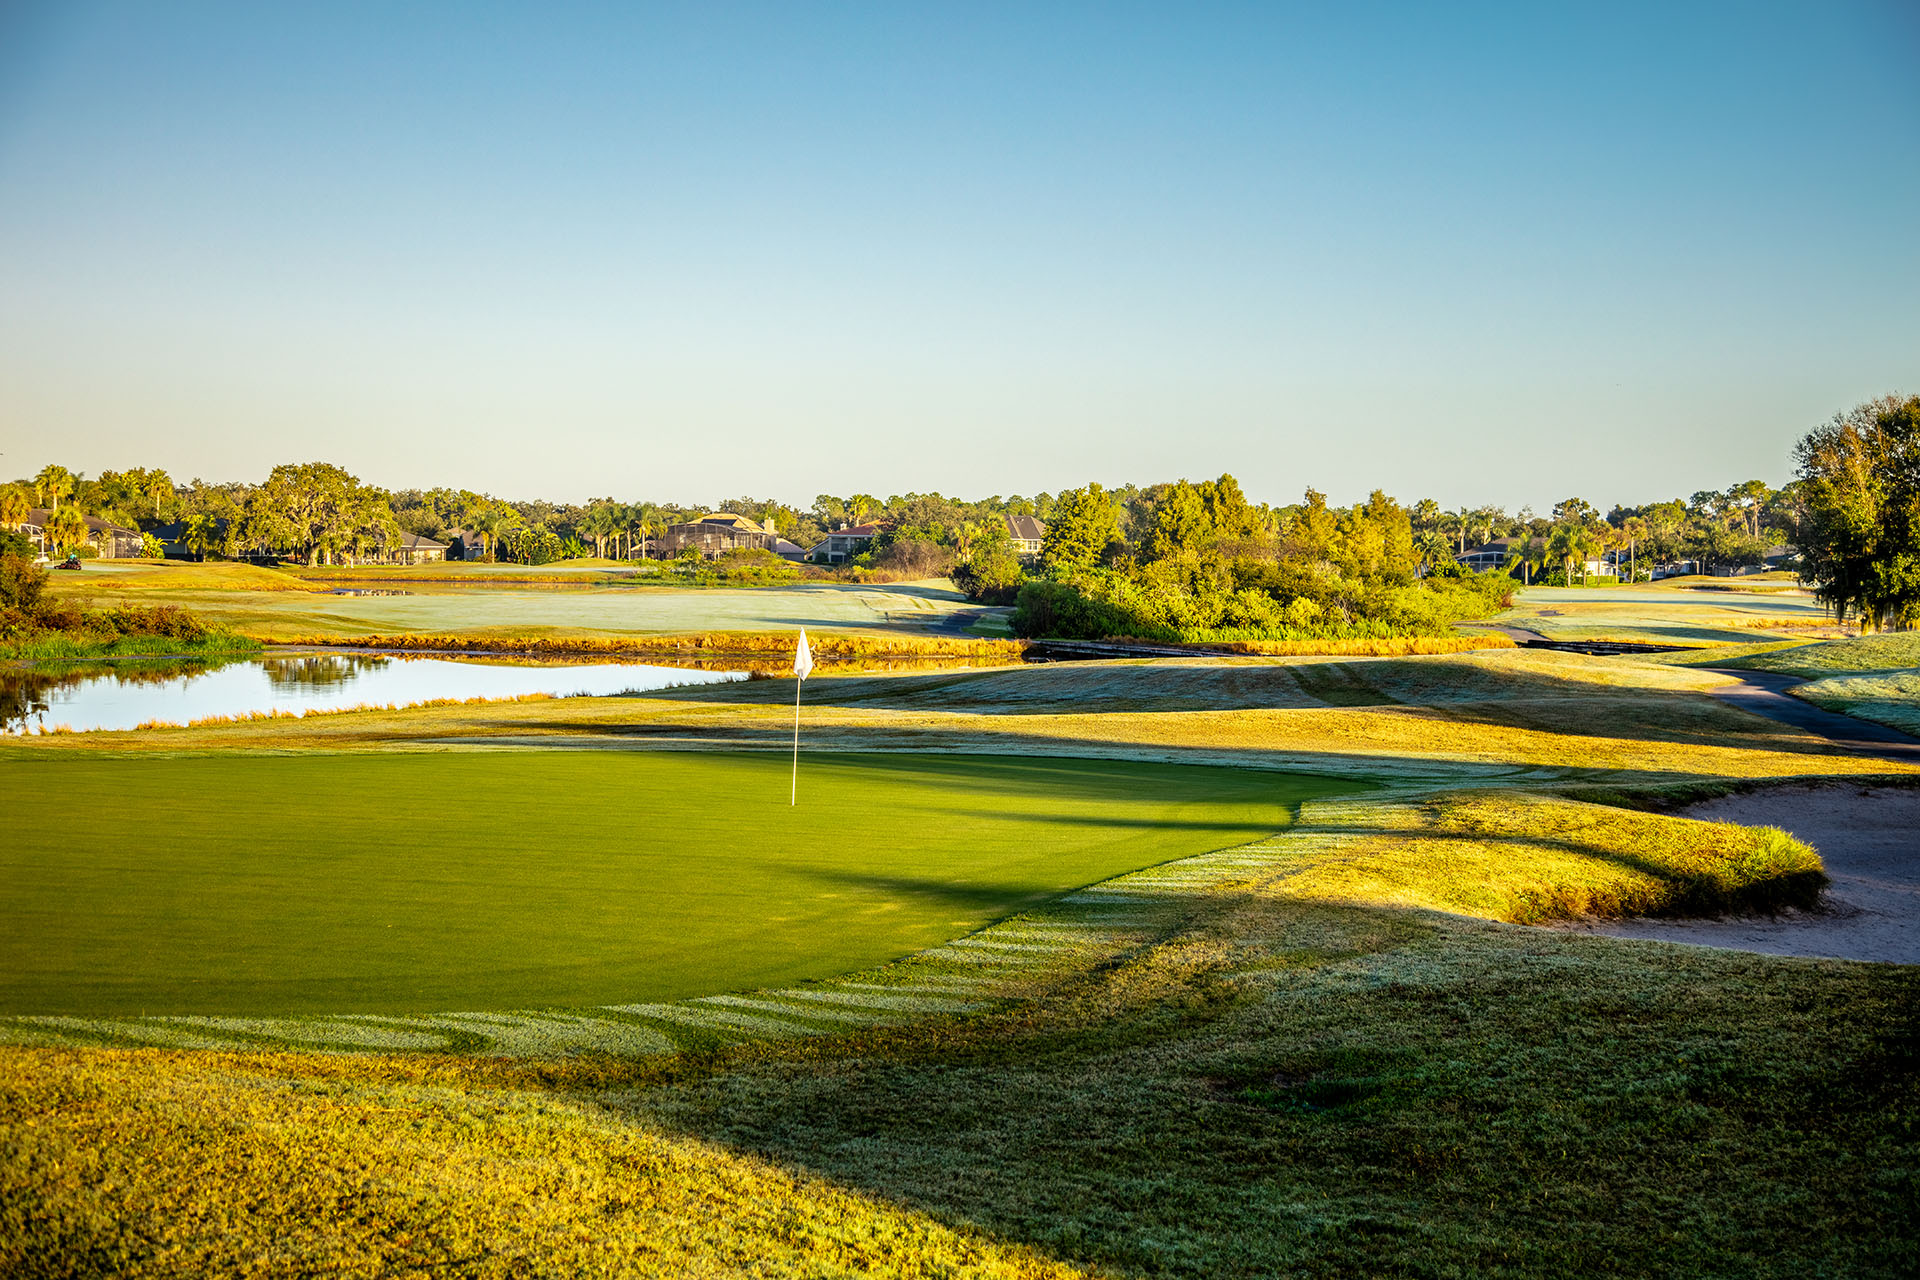 Kissimmee Bay Country Club